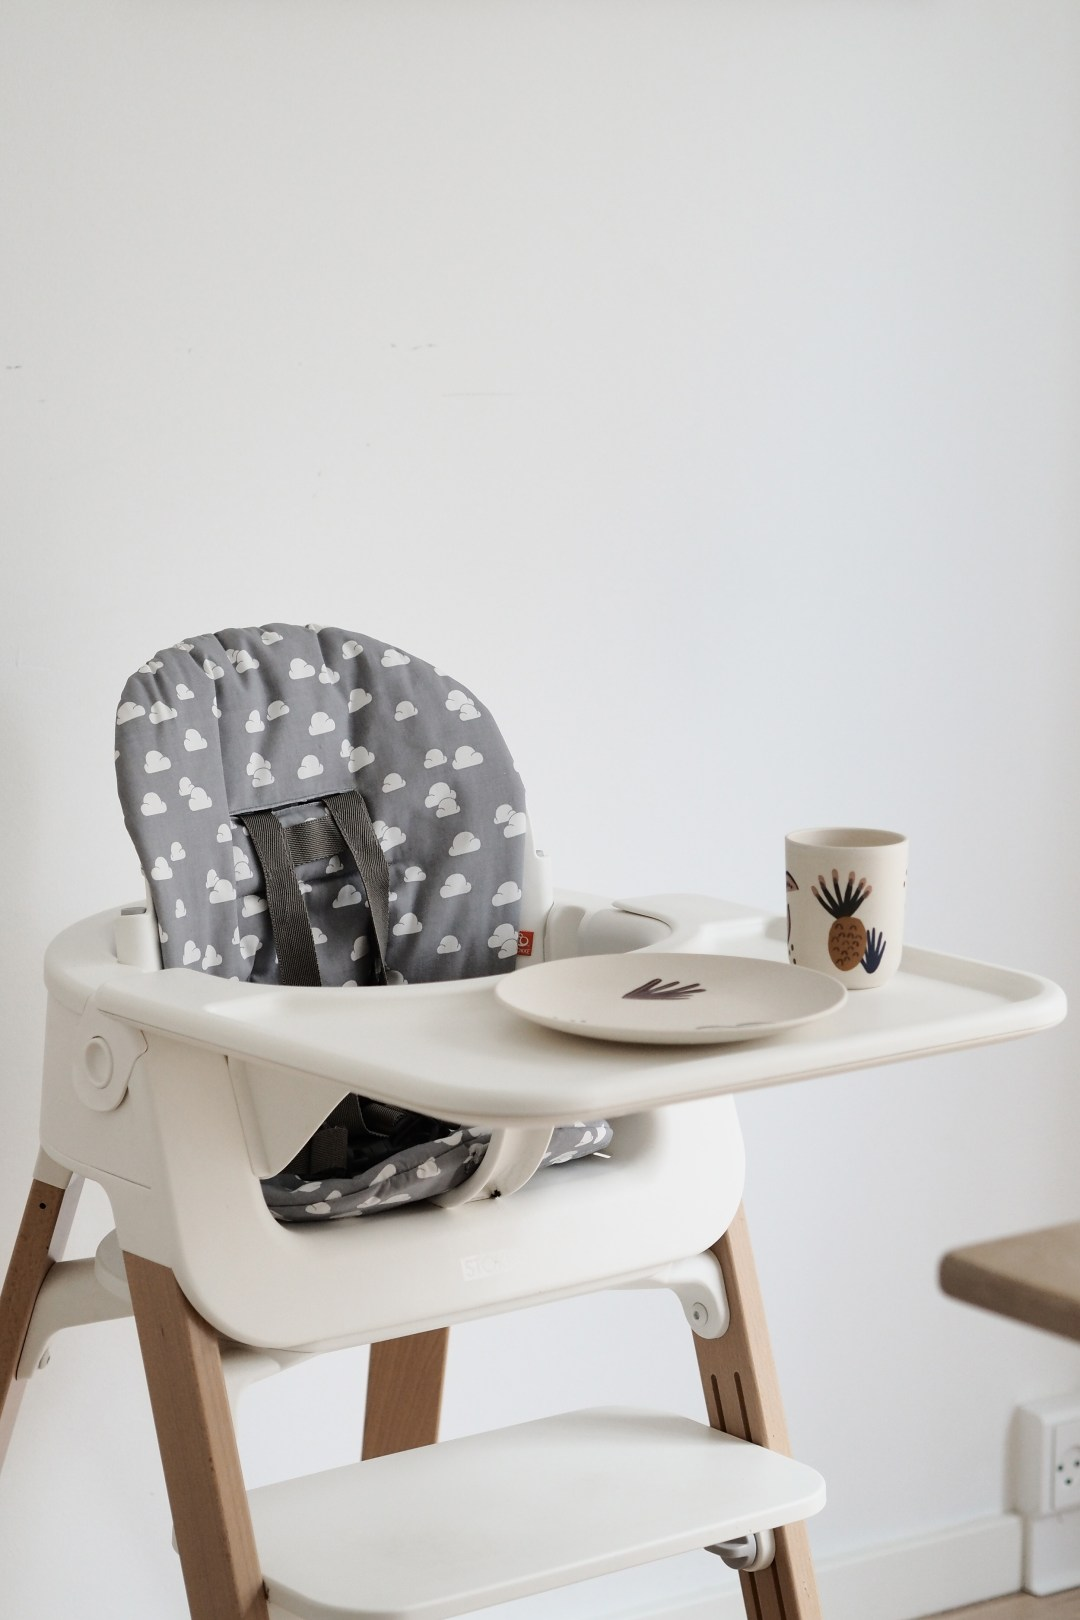 Be my guest | selecting products to welcome baby guests